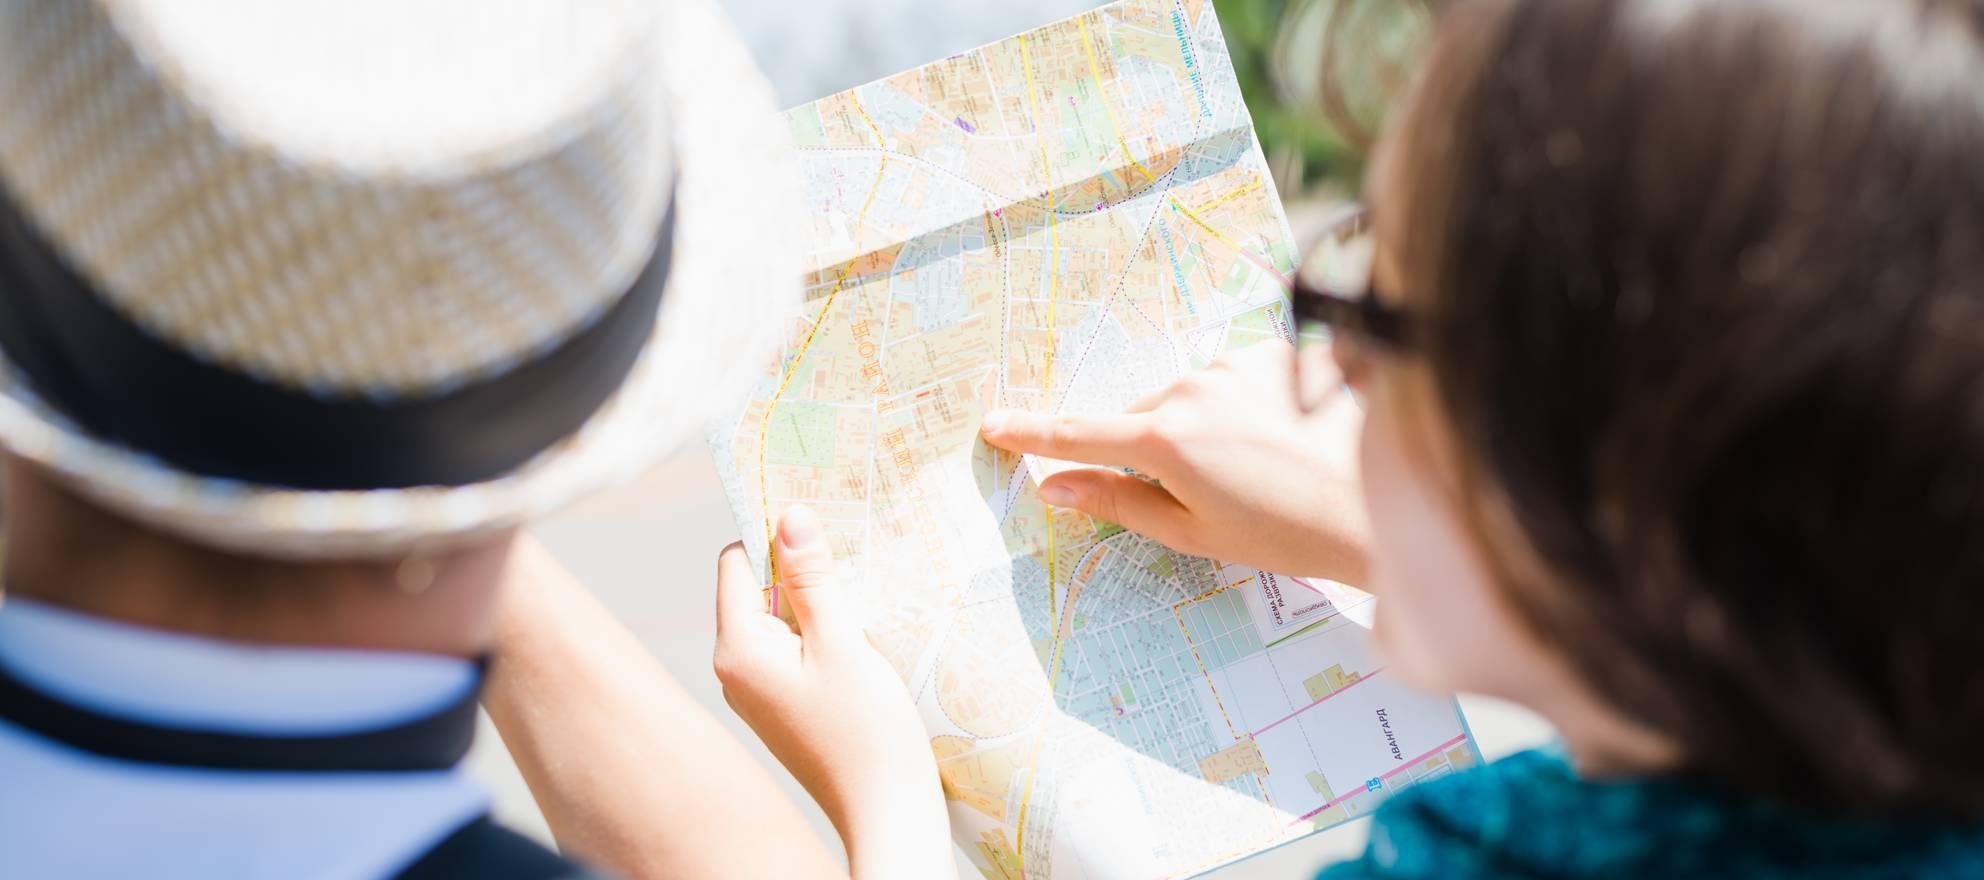 Only 16 percent of Americans take advantage of location-based mobile services